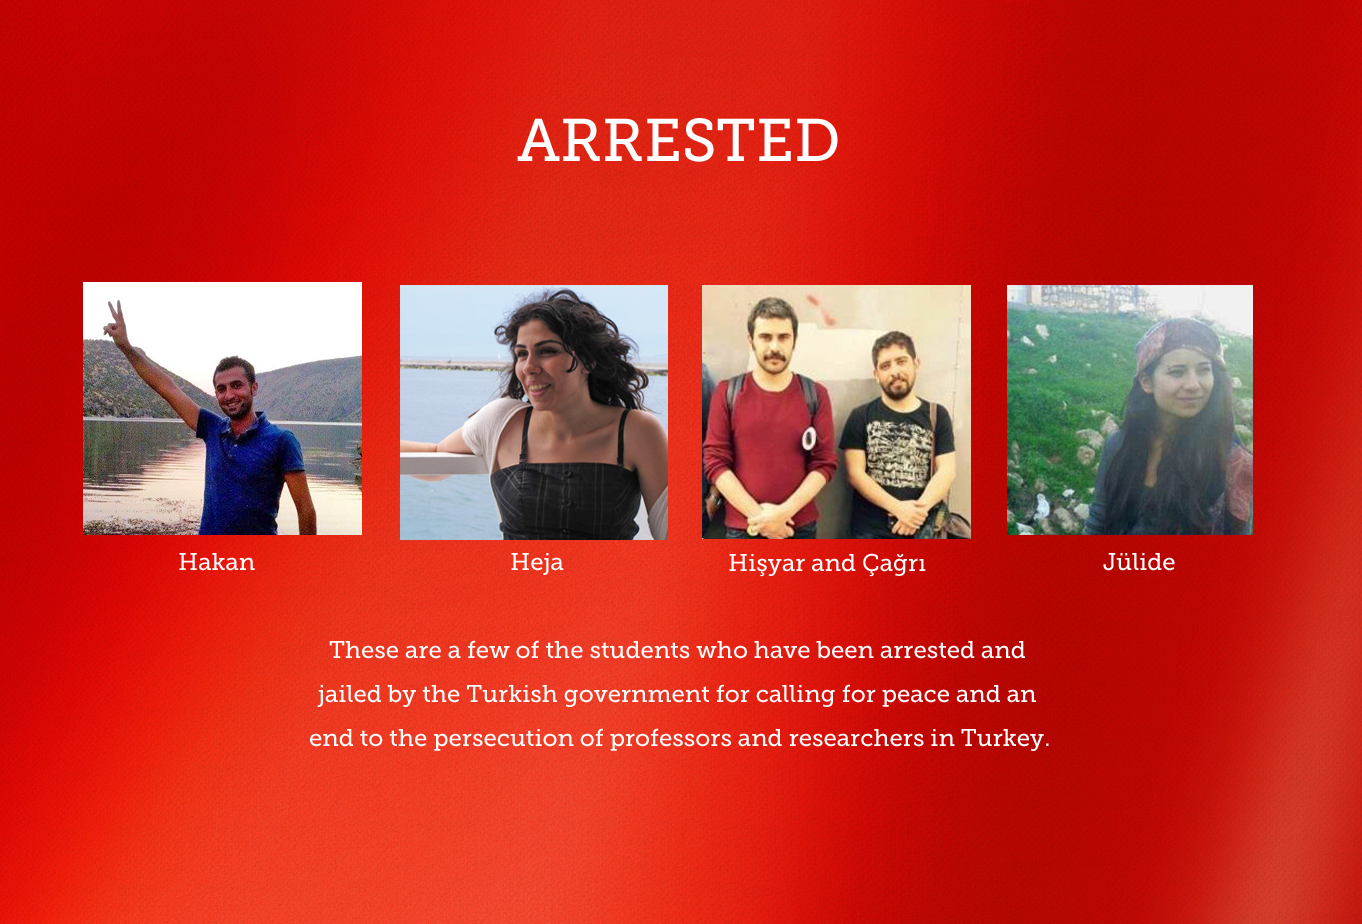 Students Arrested in Turkey